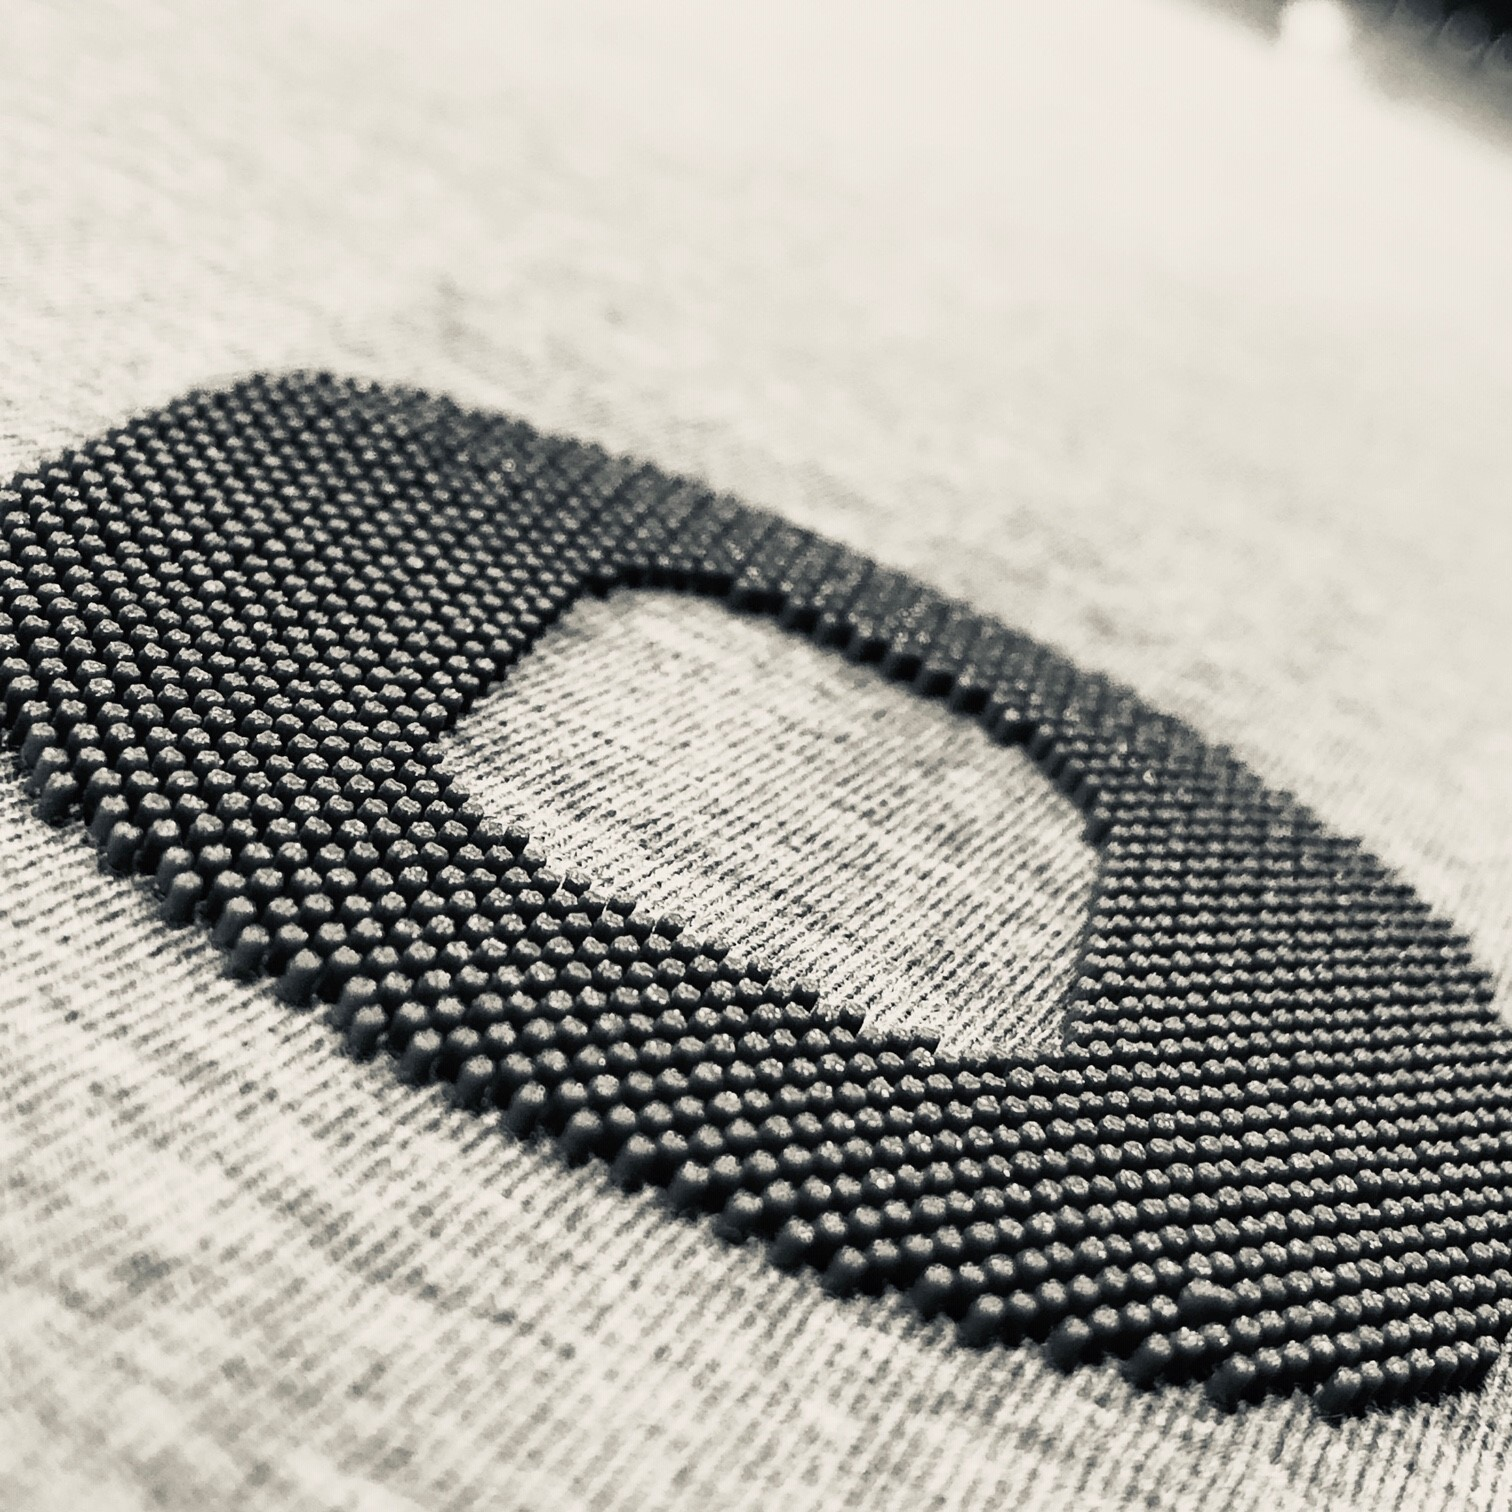 logounltd_laser_etching_embroidery_screen_printing_apparel_uniform_custom_tshirts_kirkland_bellevue_seattle_redmond_woodinville_branded_merchandise_promotional_products_logo_unltd_specialty_inks (1).jpg